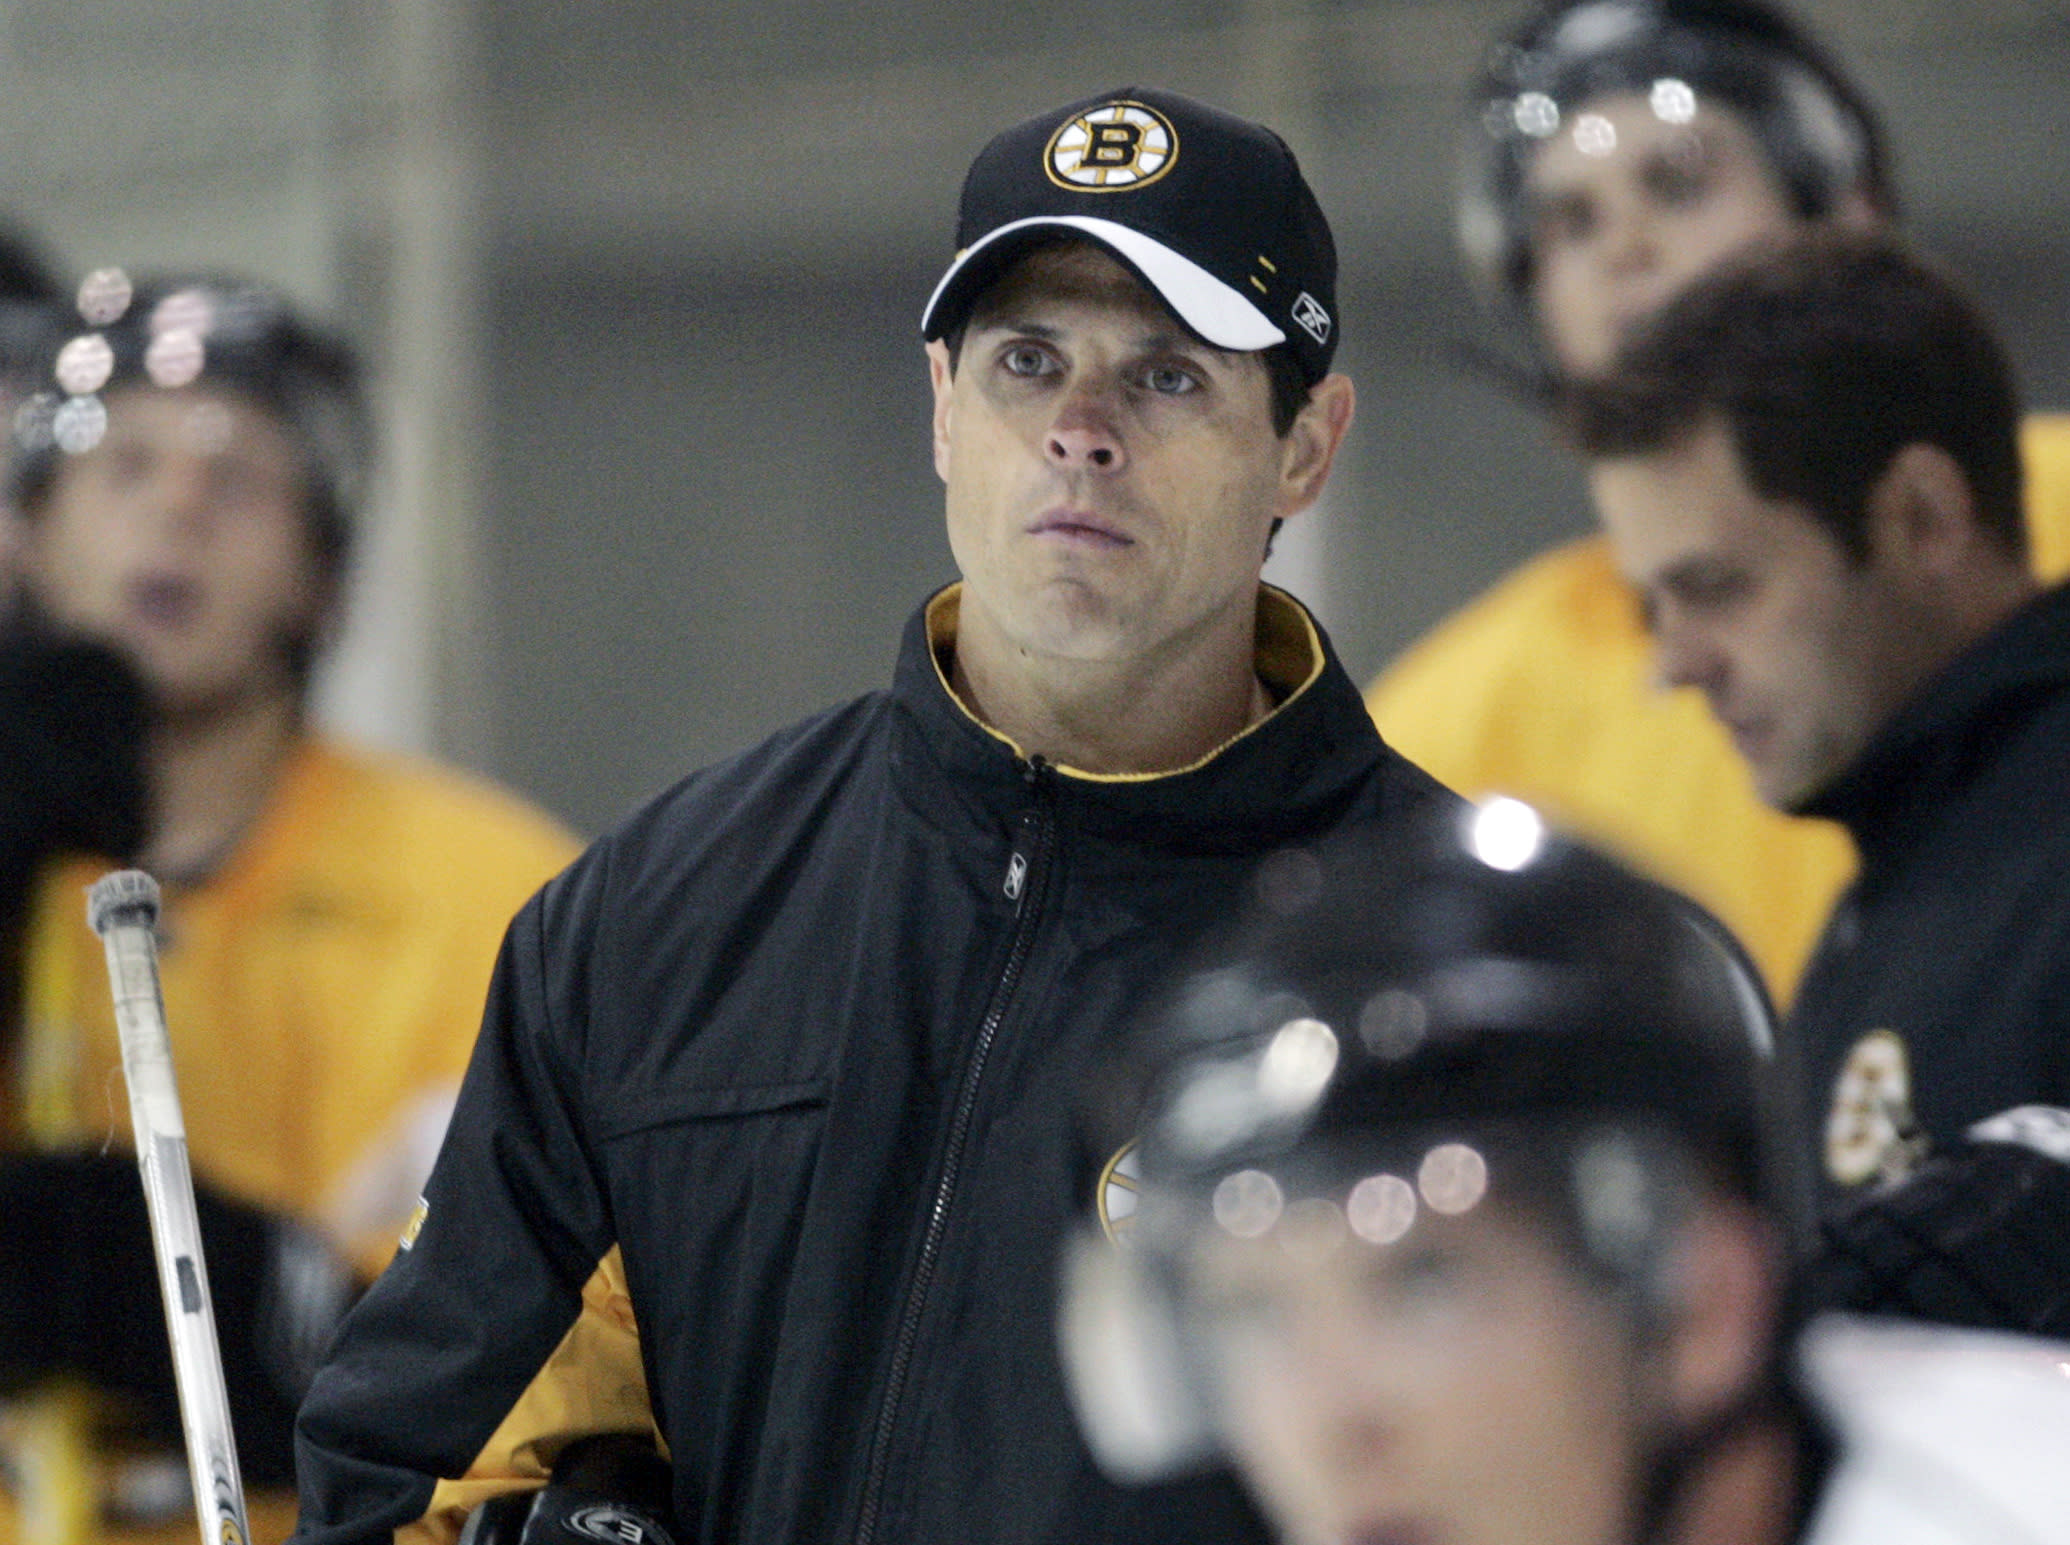 Boston Bruins elevate Don Sweeney to general manager